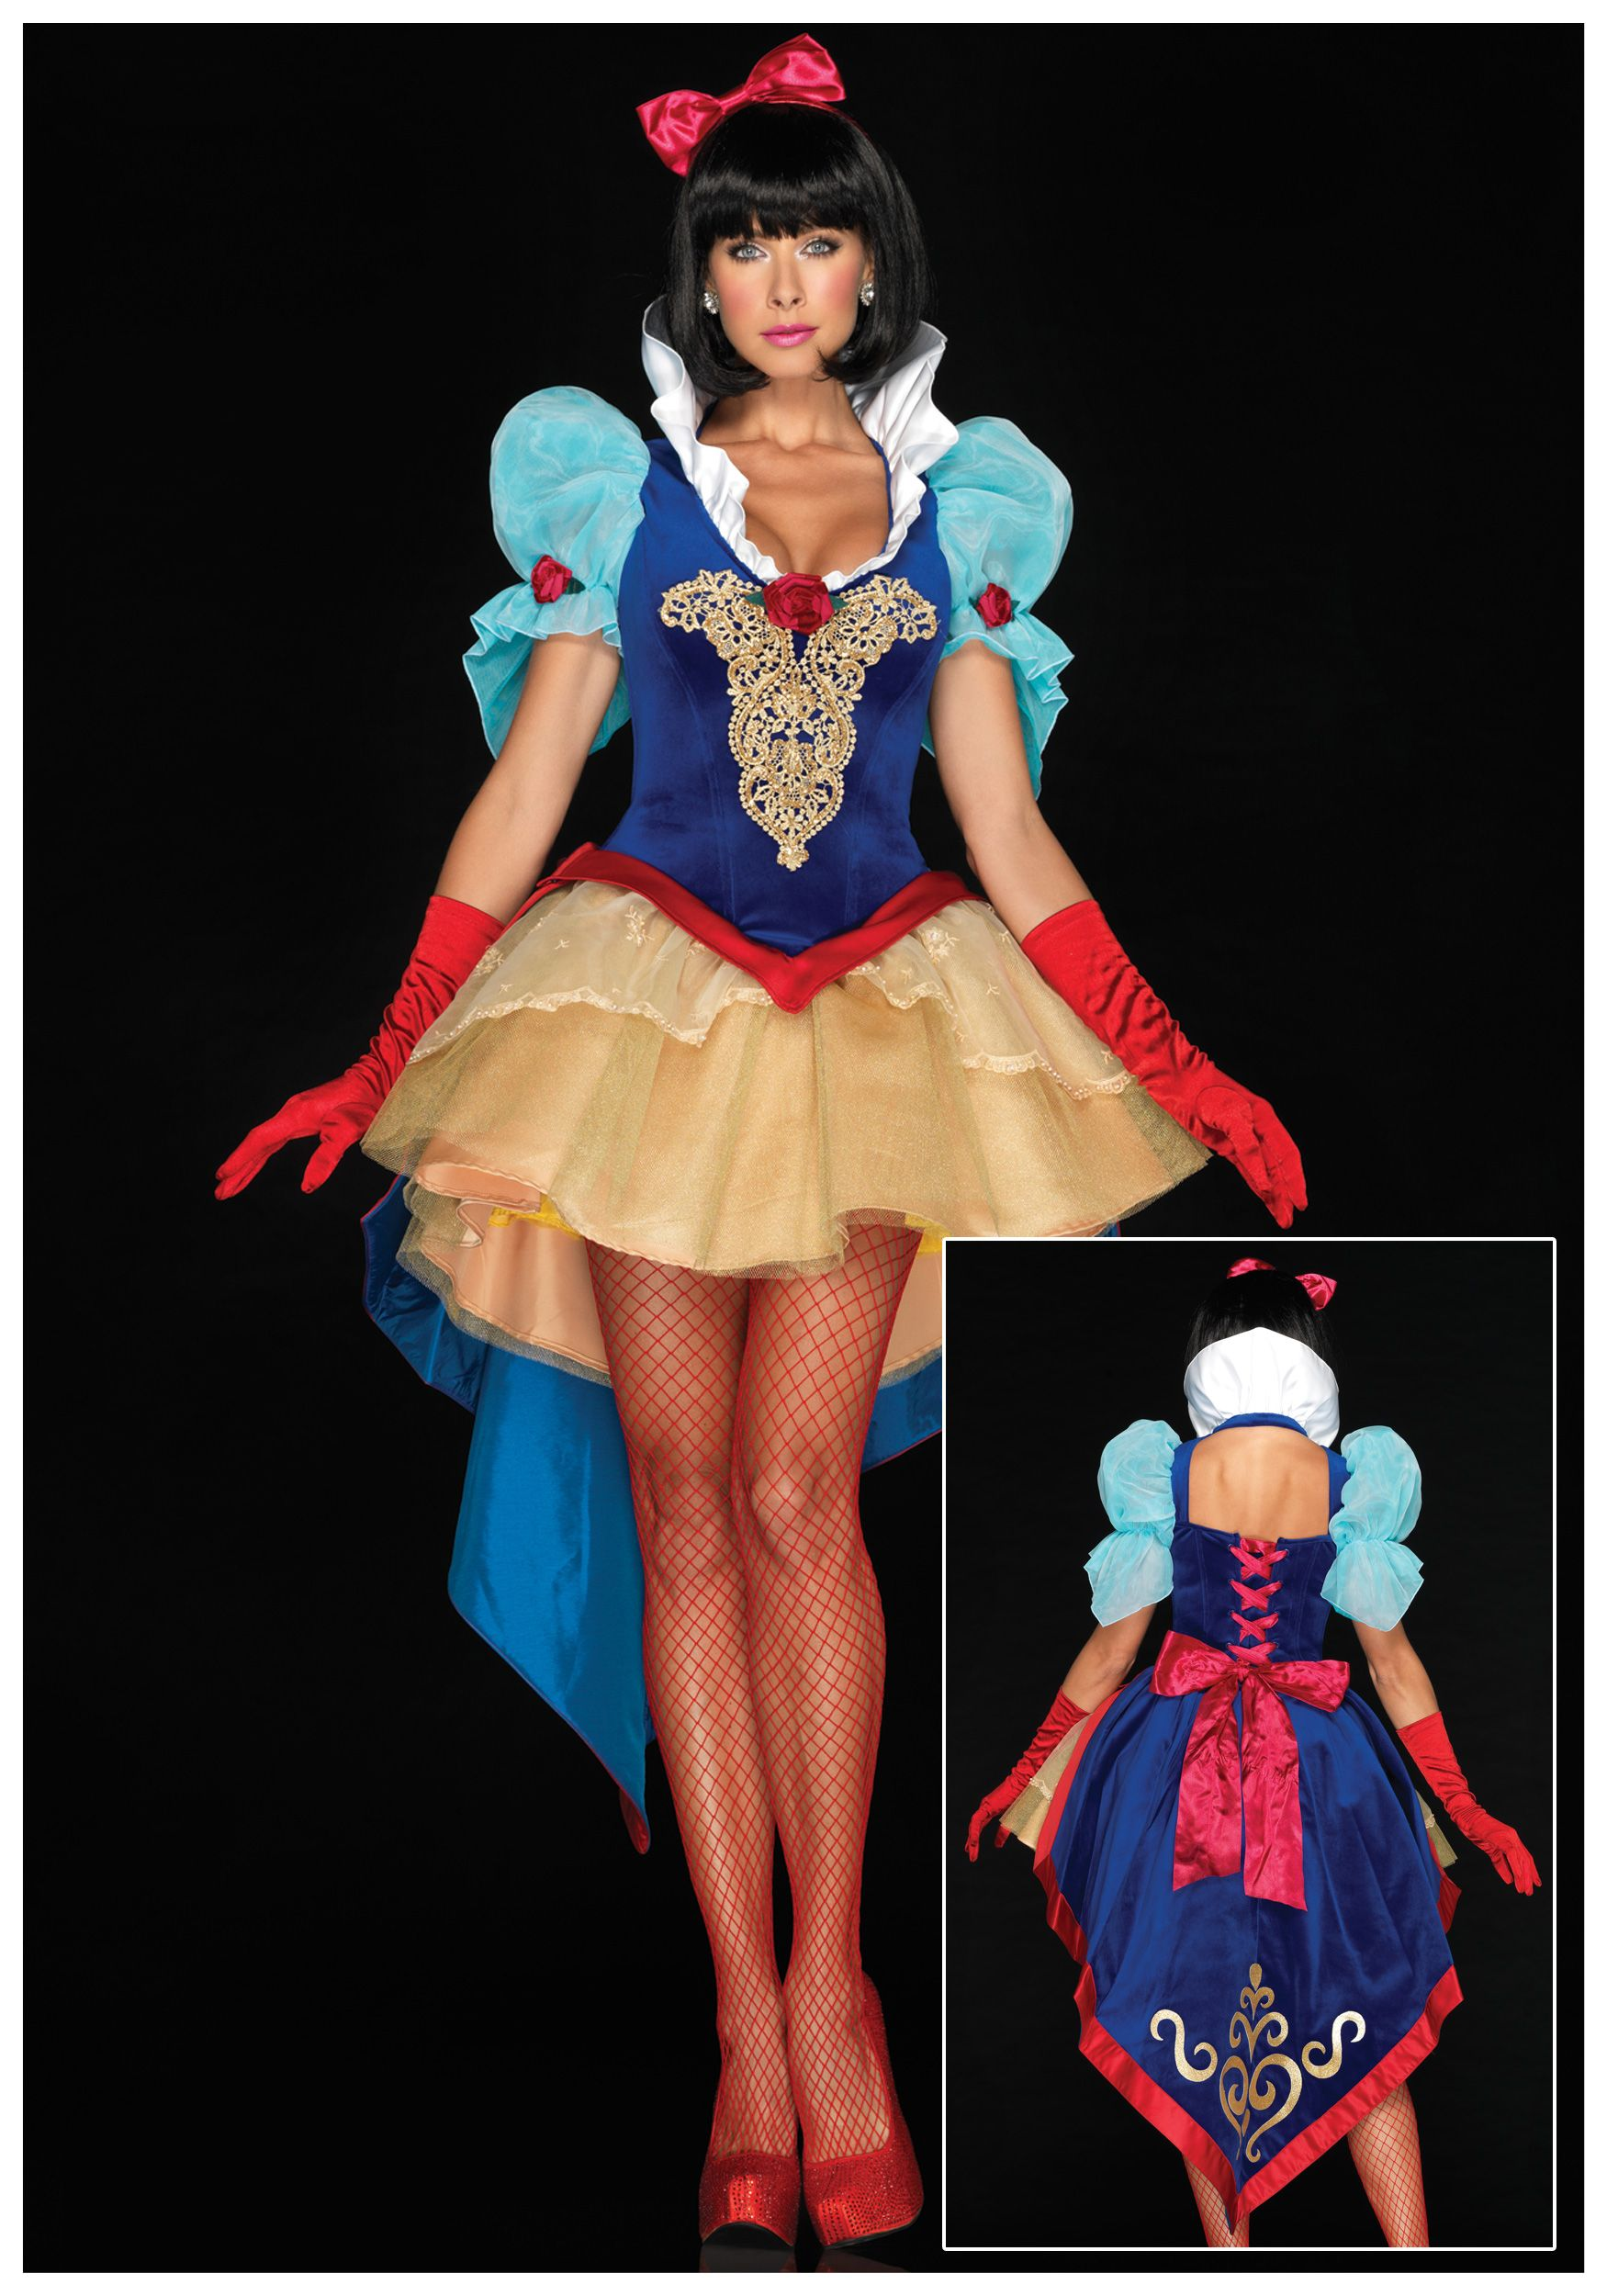 828419c419 ... Adult Halloween Cosplay Dress Princess Costume Snow White Costumes For  Women Dance Party Sex Role play Clothing. Coolest snow white costume I ve  ever ...